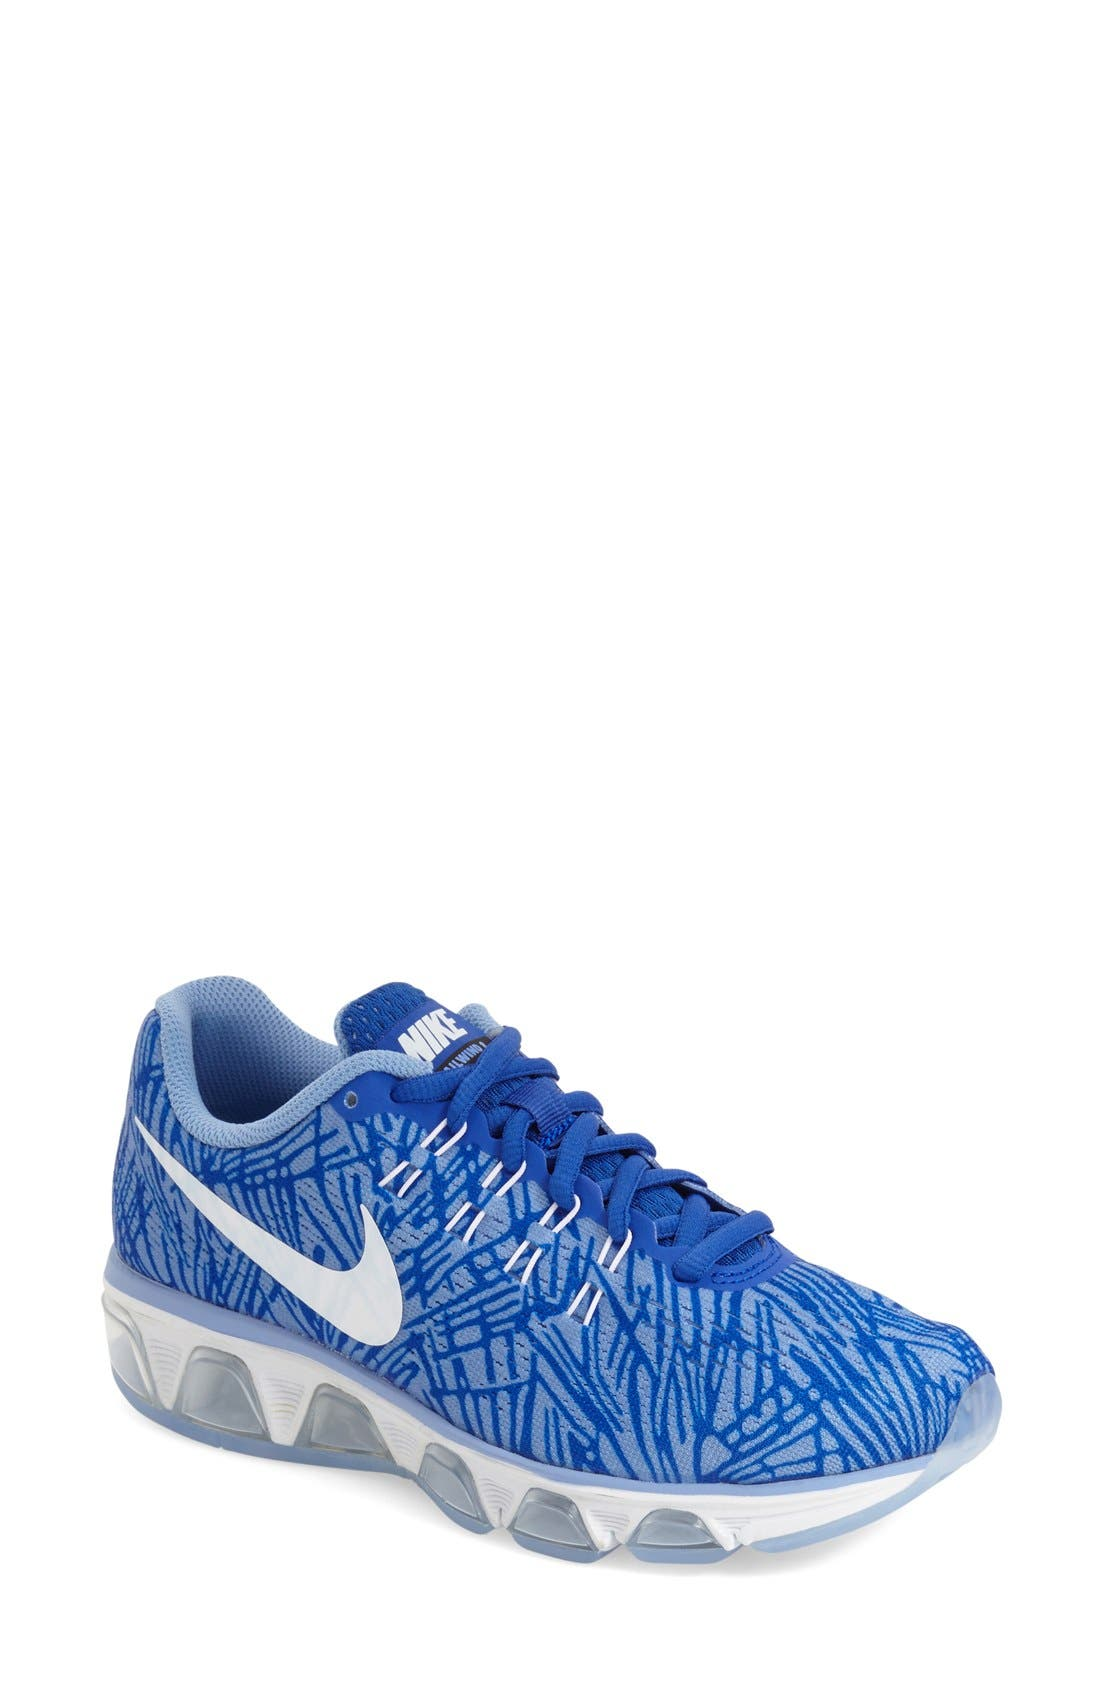 Alternate Image 1 Selected - Nike 'Air Max Tailwind 8' Running Shoe (Women)